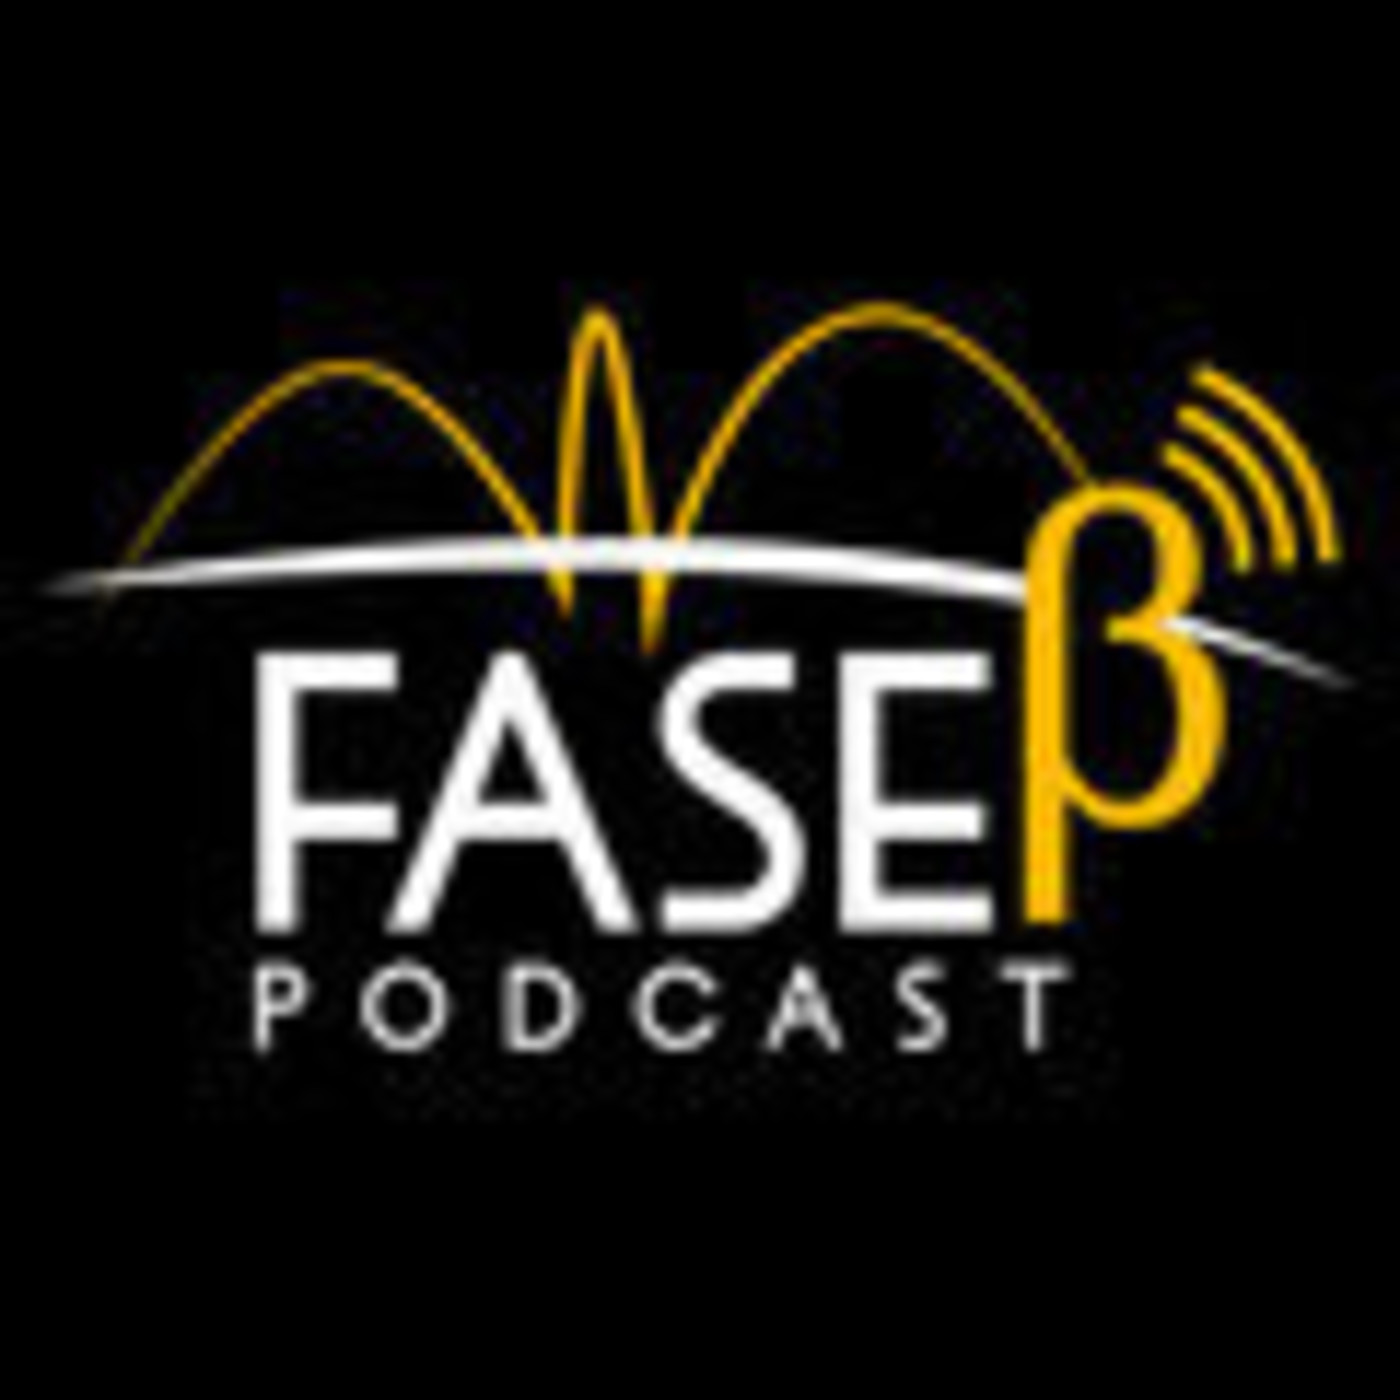 Fase Beta Podcast é gerenciado